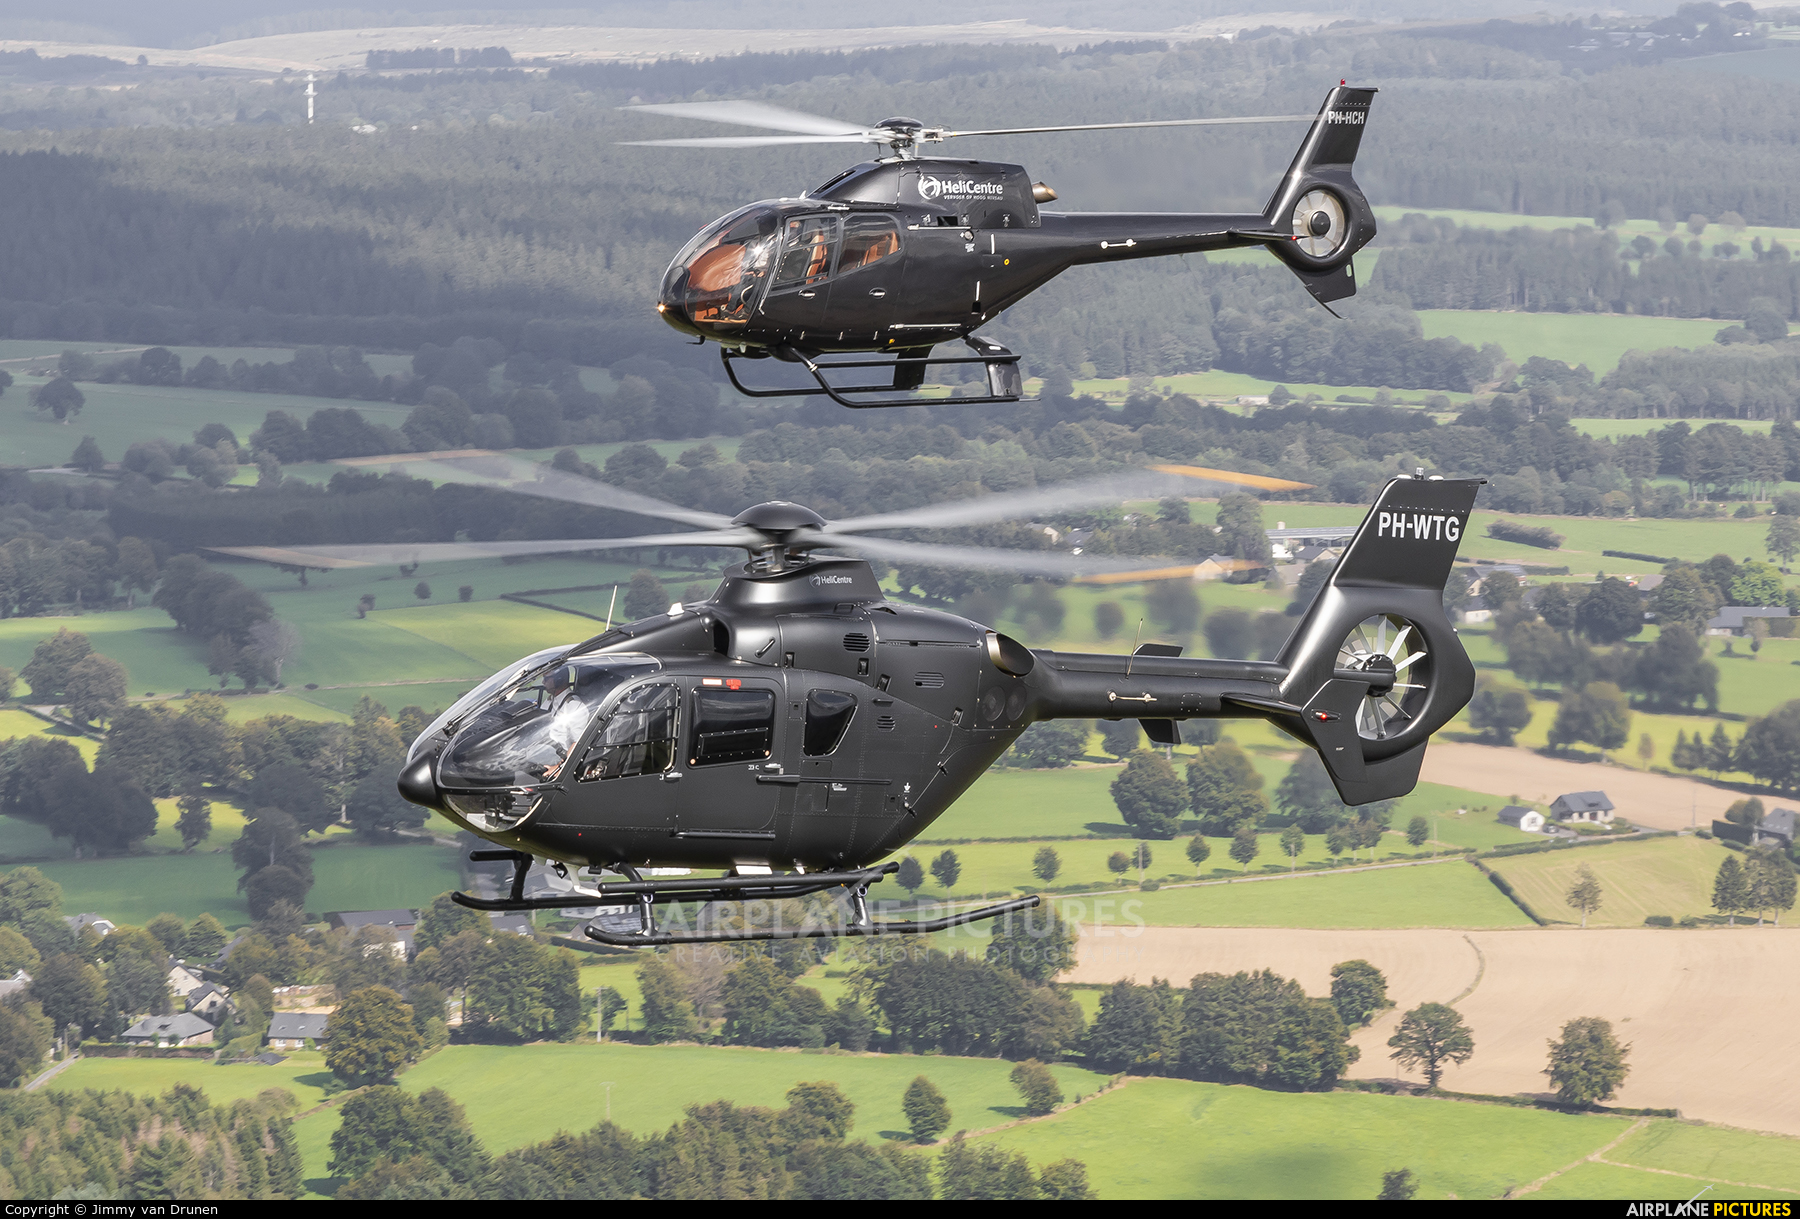 Helicentre PH-WTG aircraft at In Flight - Belgium